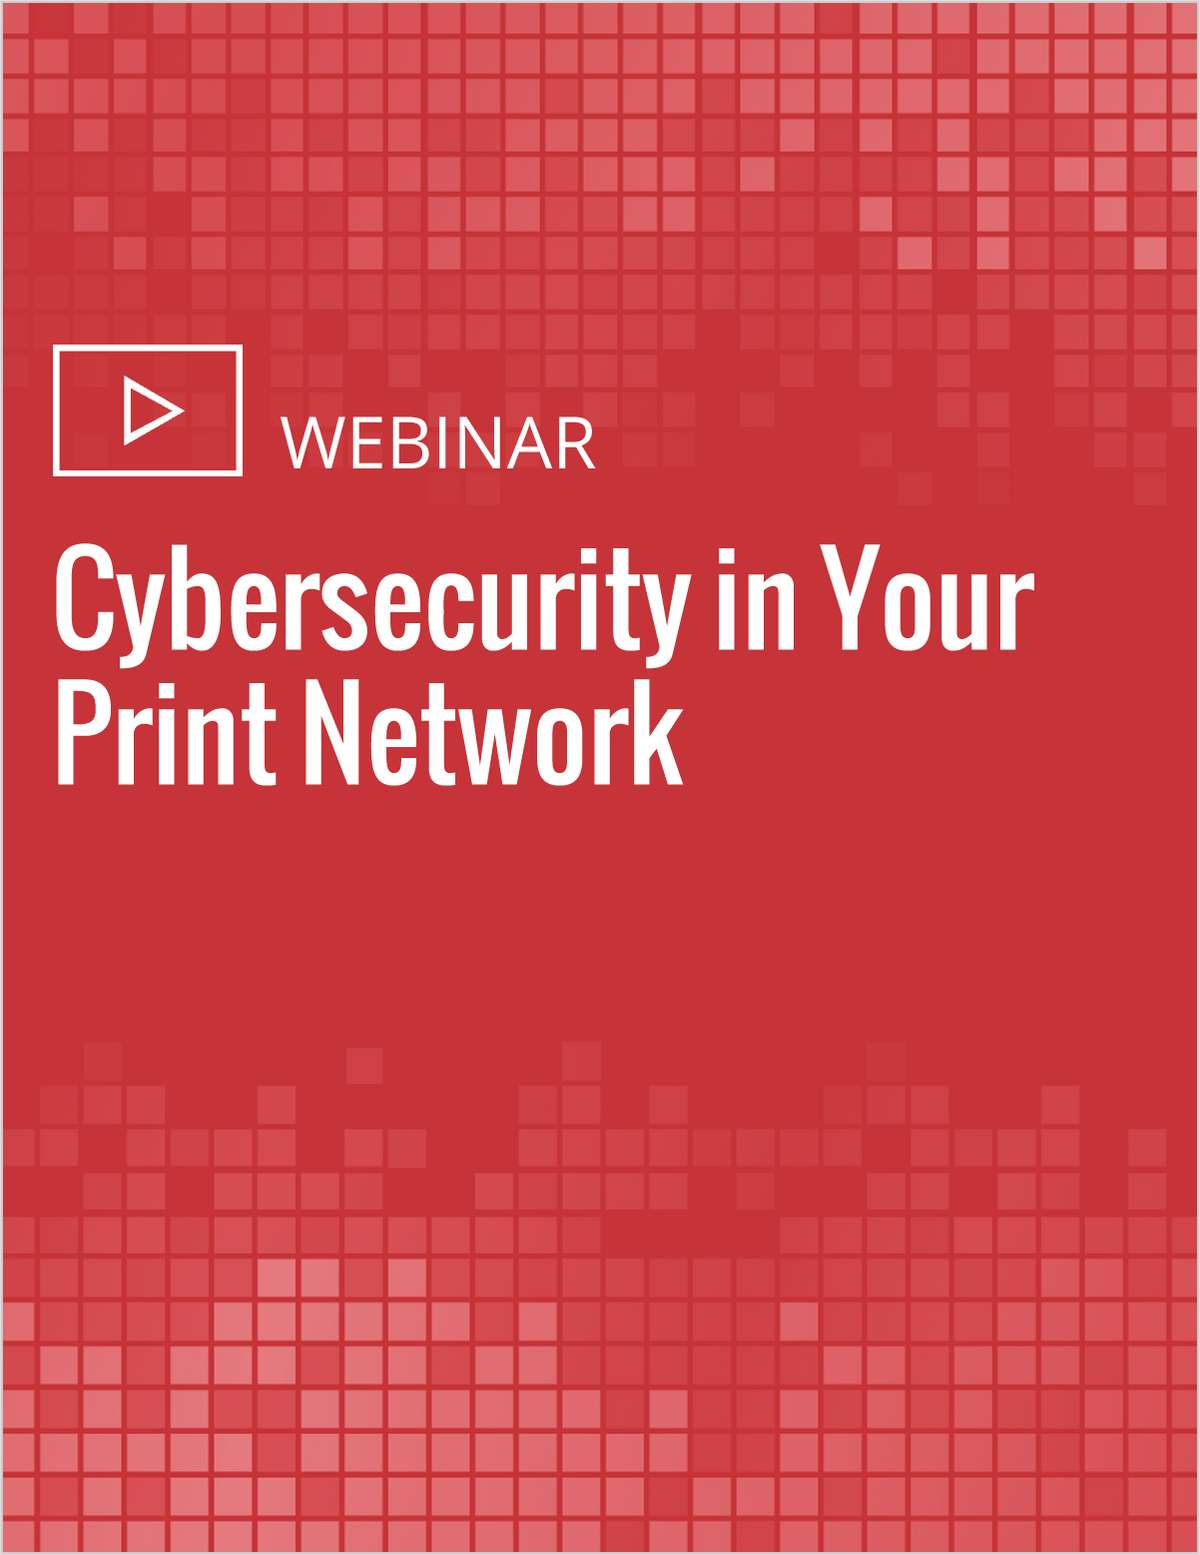 Cybersecurity in Your Print Network